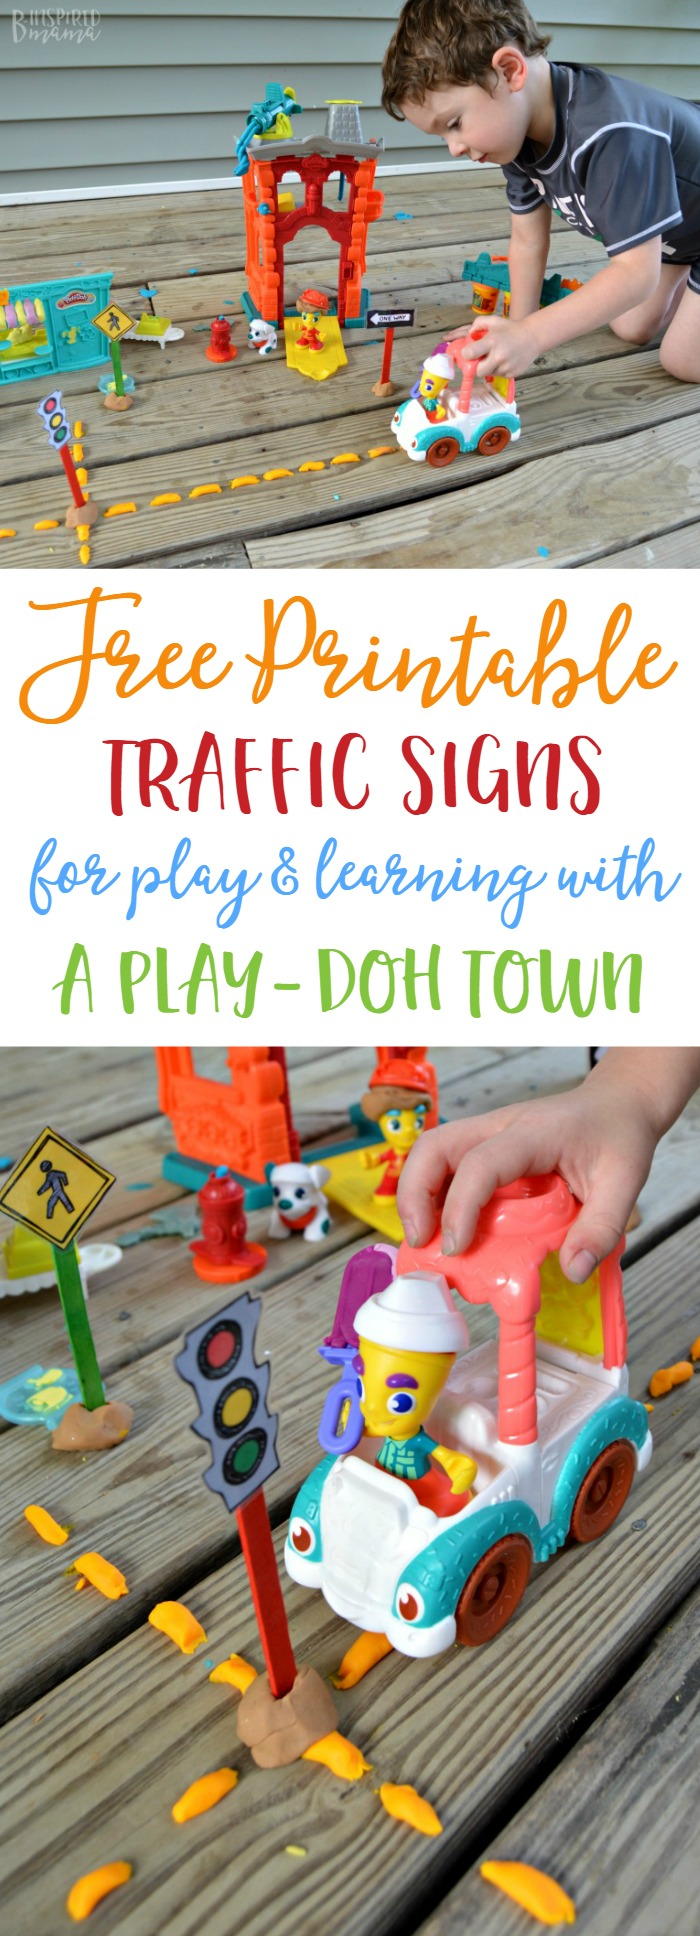 Free Printable Traffic Signs for Play and Learning - with PLAY-DOH Town Playsets - from B-Inspired Mama